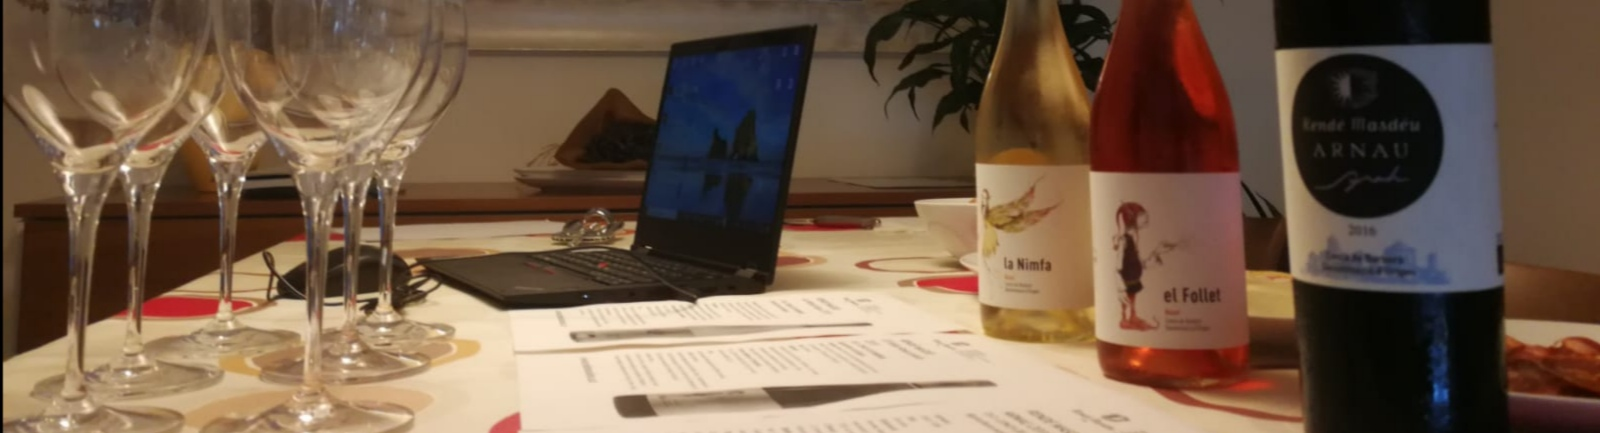 Excel·lent tast virtual de vins!